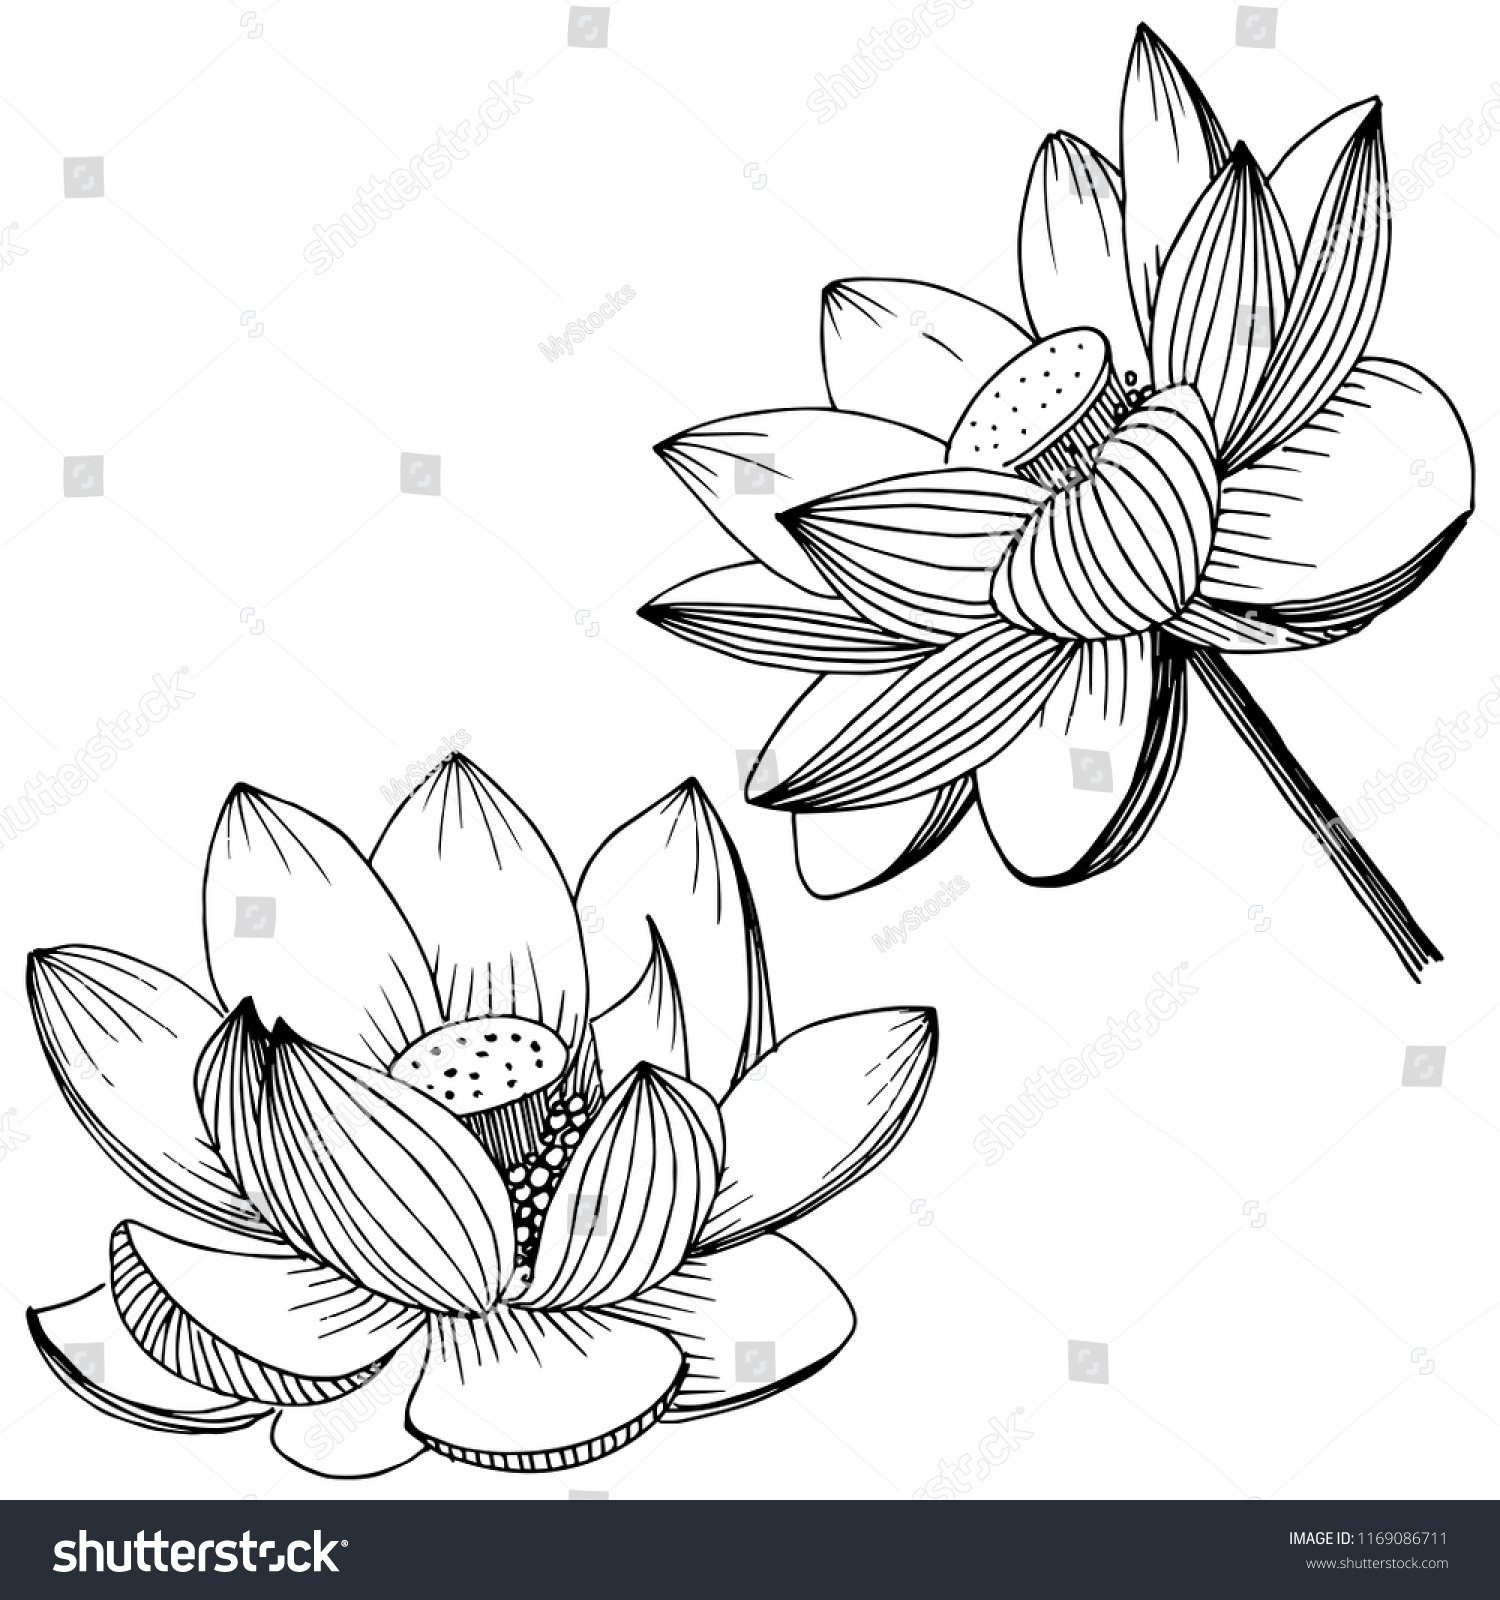 Ink Pencil The Leaves And Flowers Of Lotus Isolate Line Art